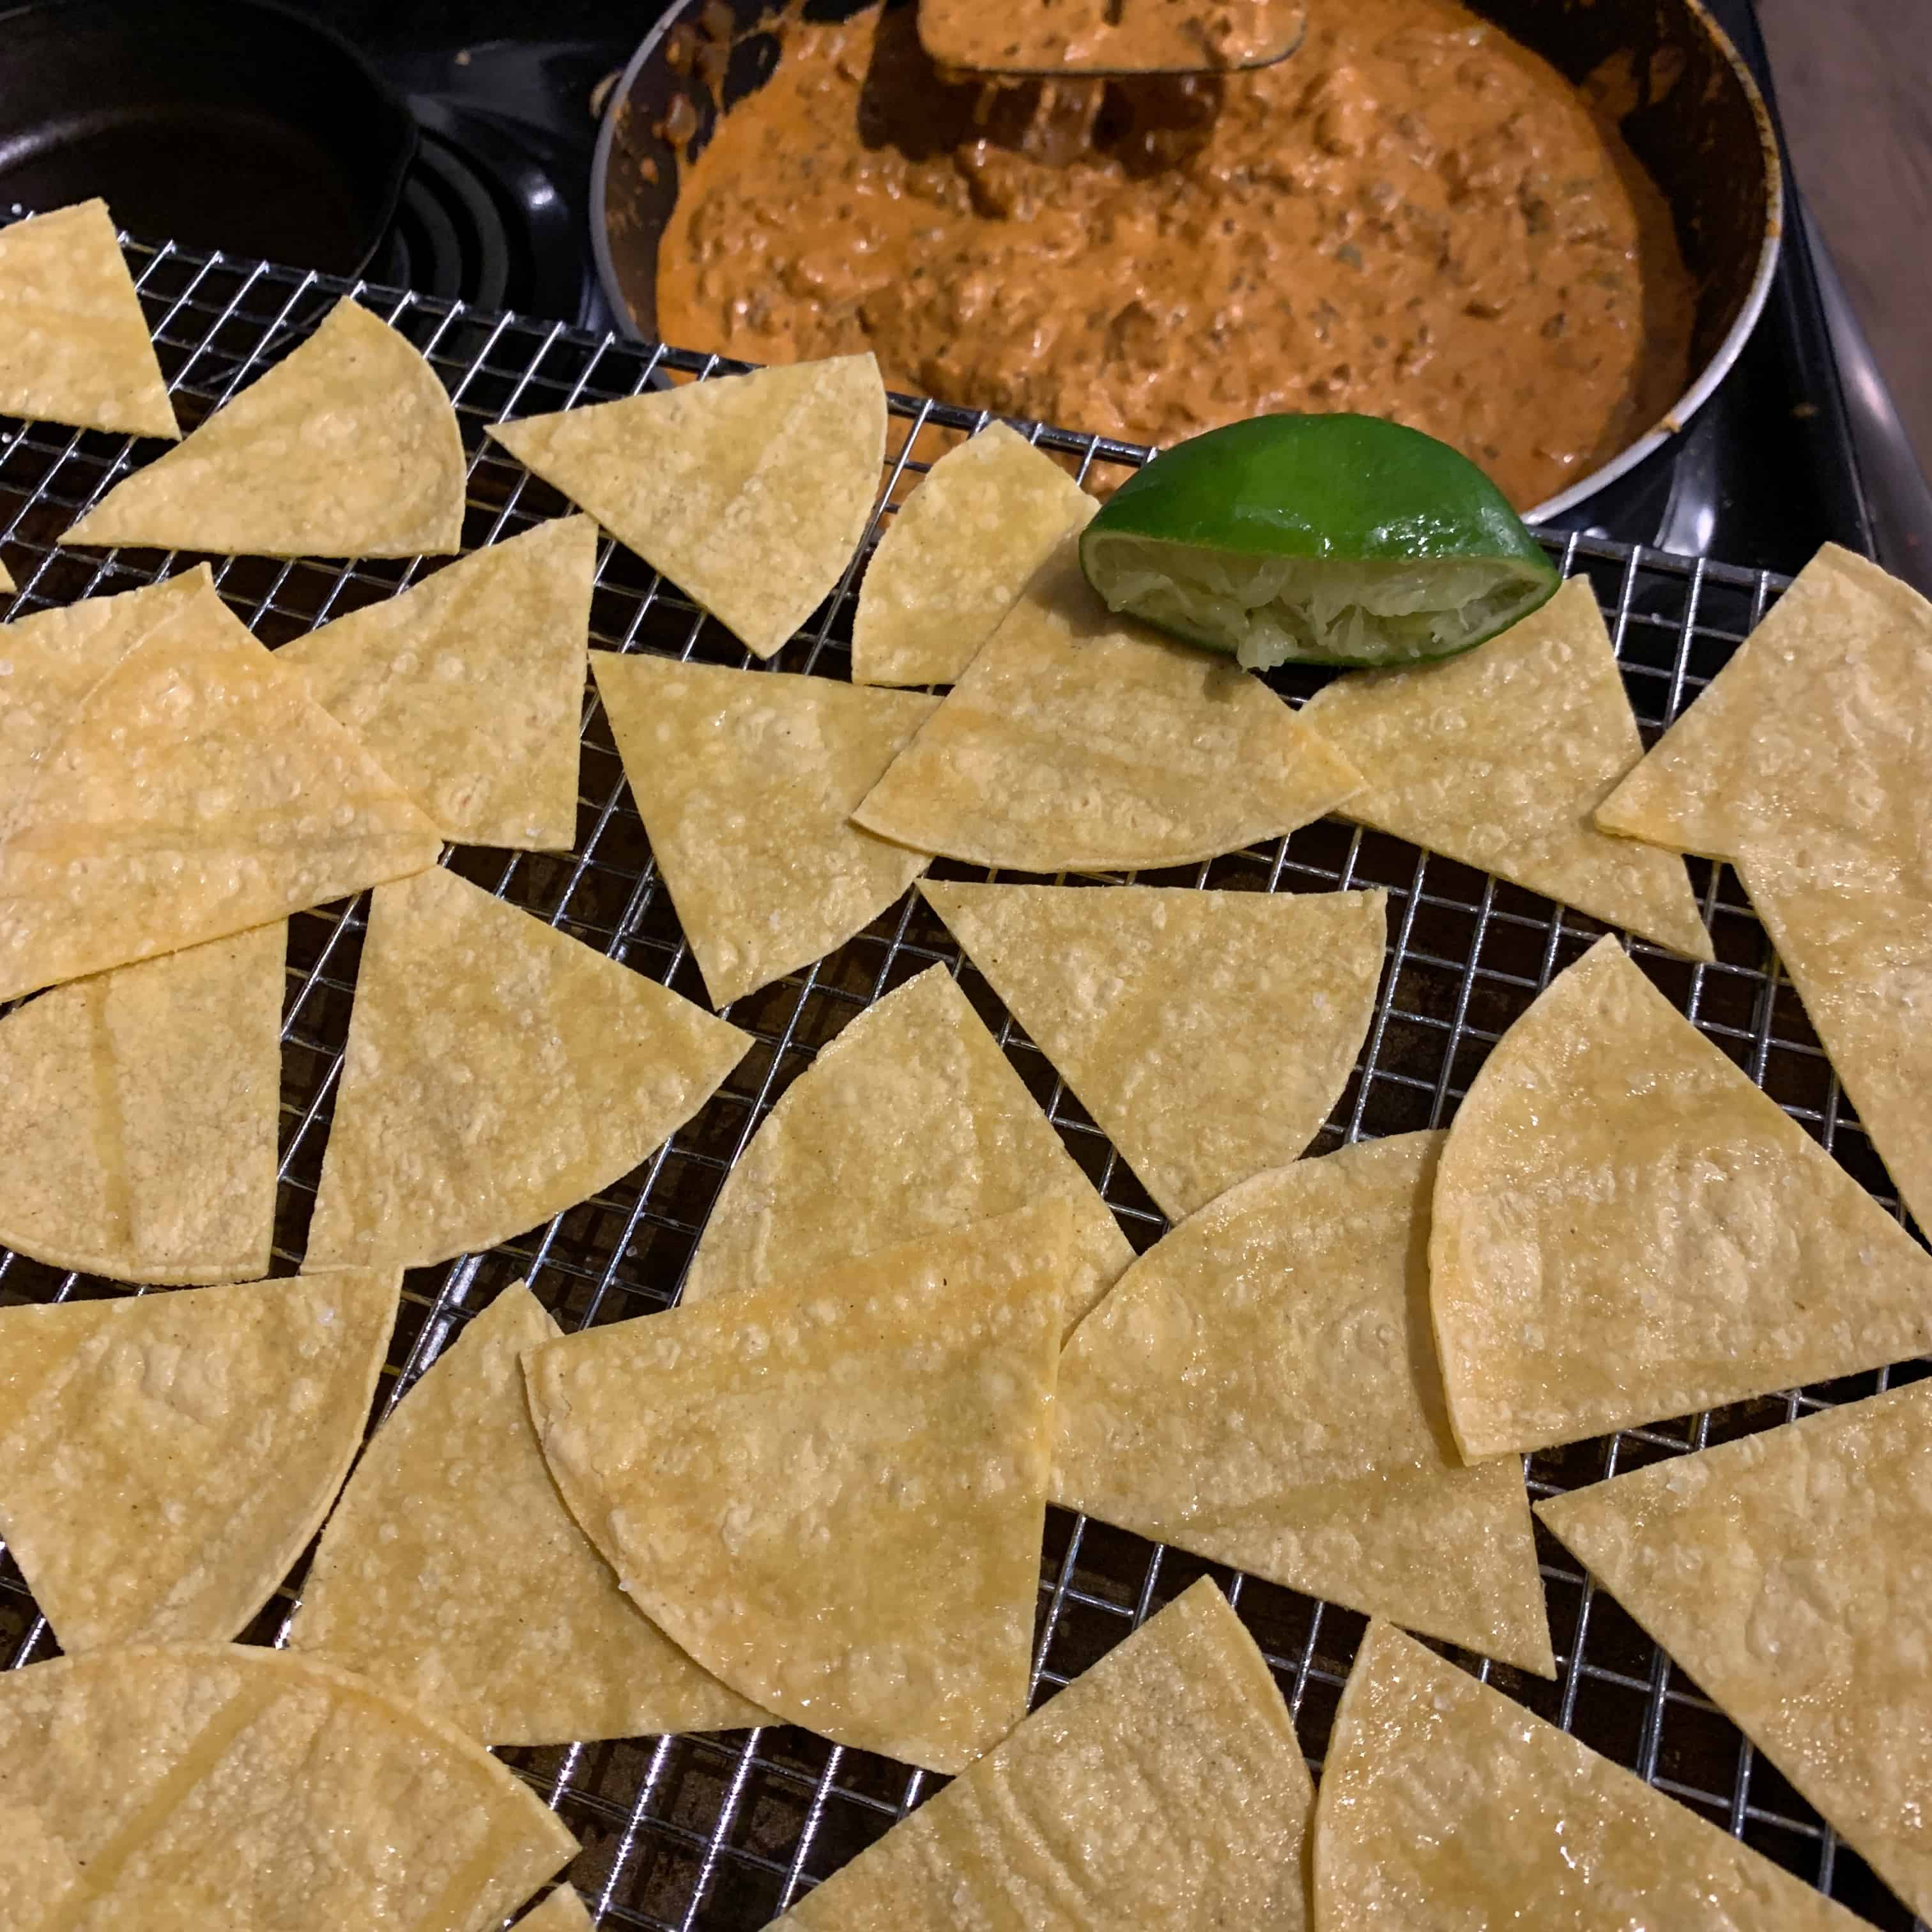 wire rack with tortilla slices